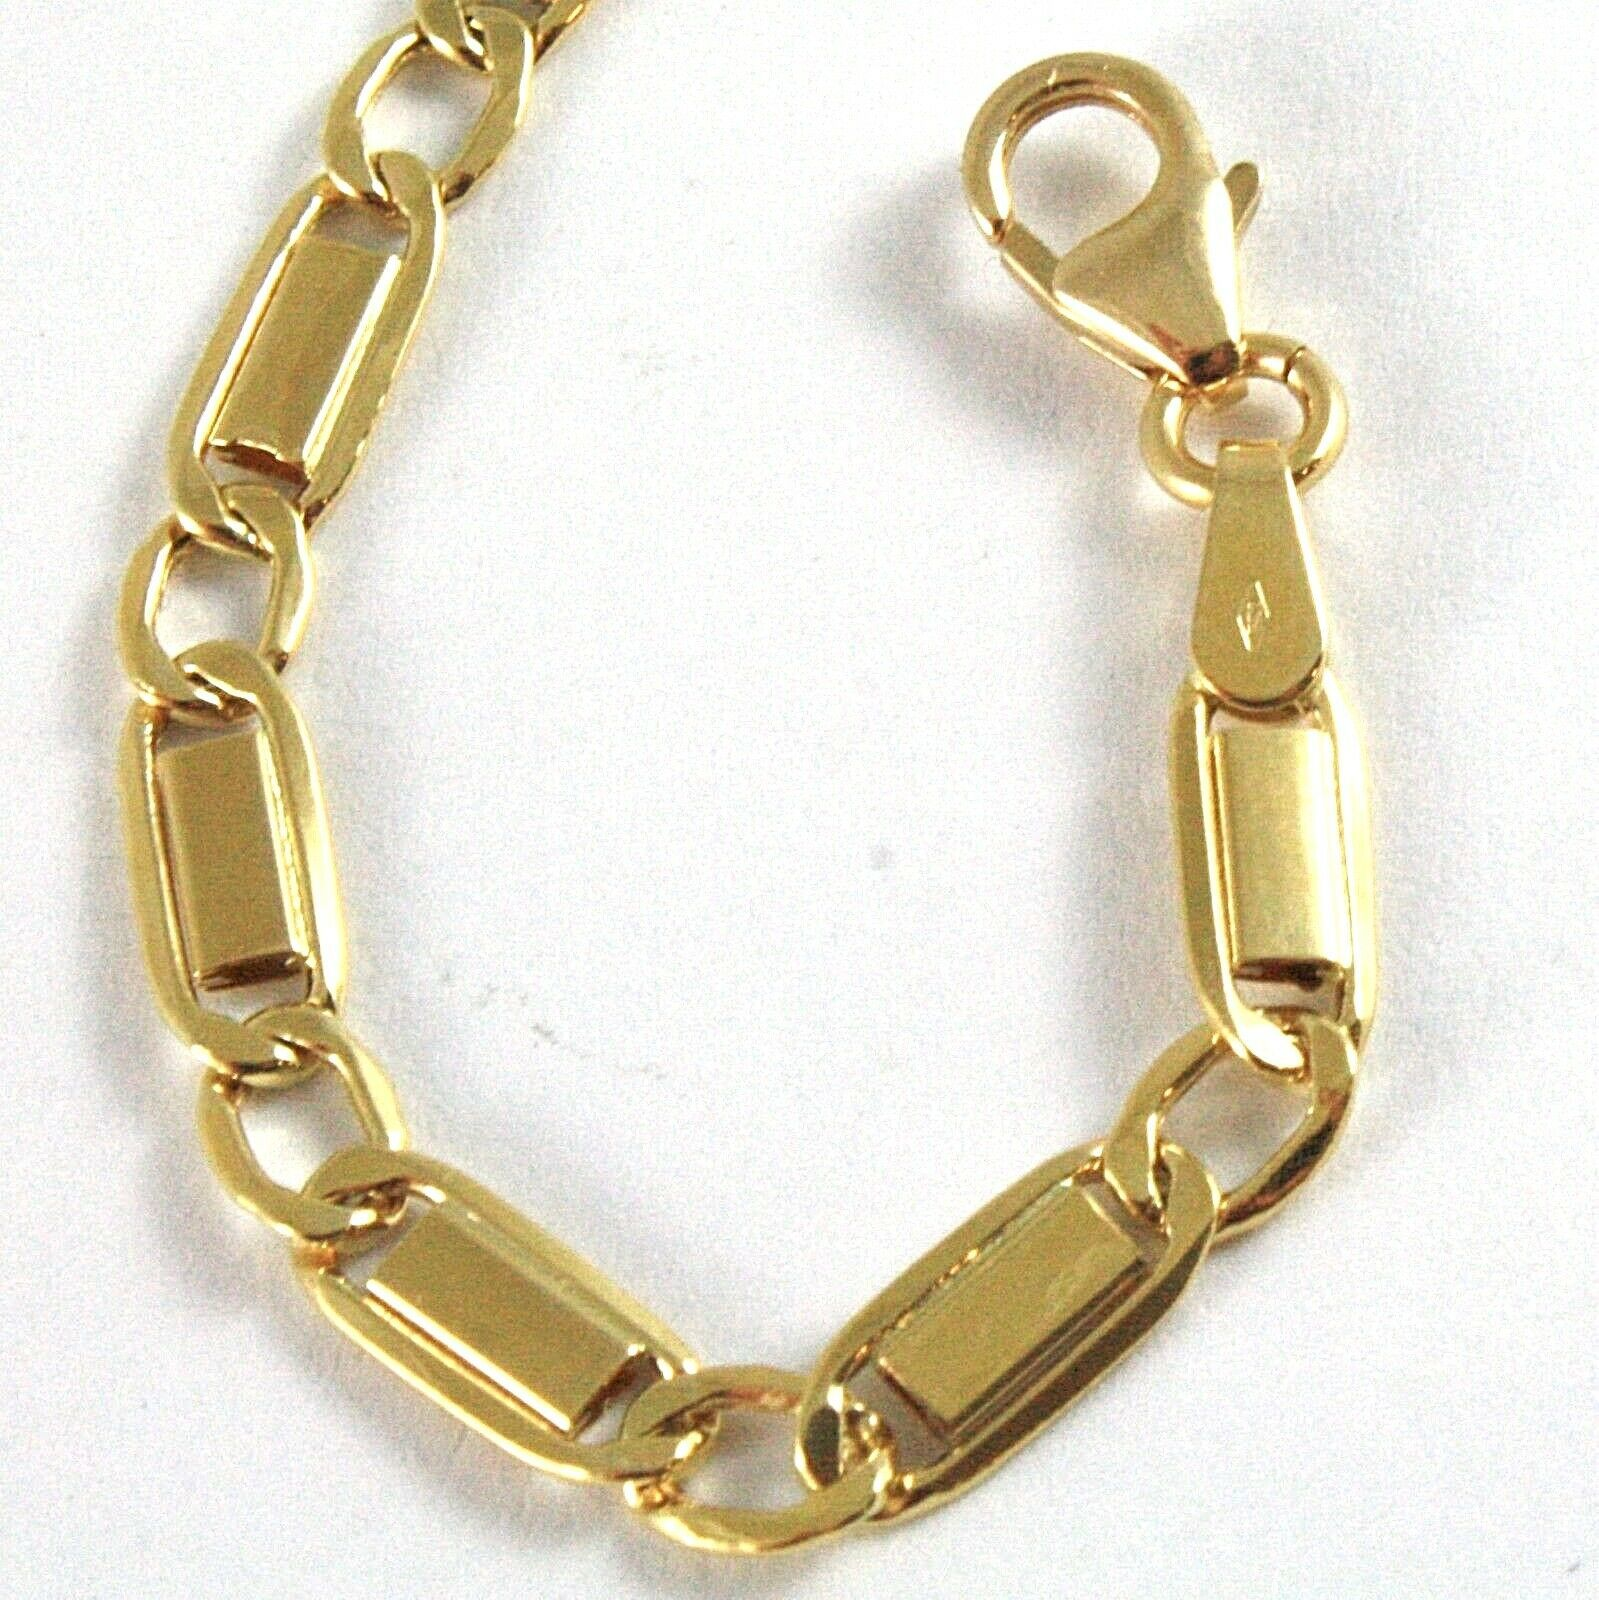 SOLID 18K YELLOW GOLD BRACELET WITH FLAT ALTERNATE 4 MM OVAL LINK, MADE IN ITALY image 2